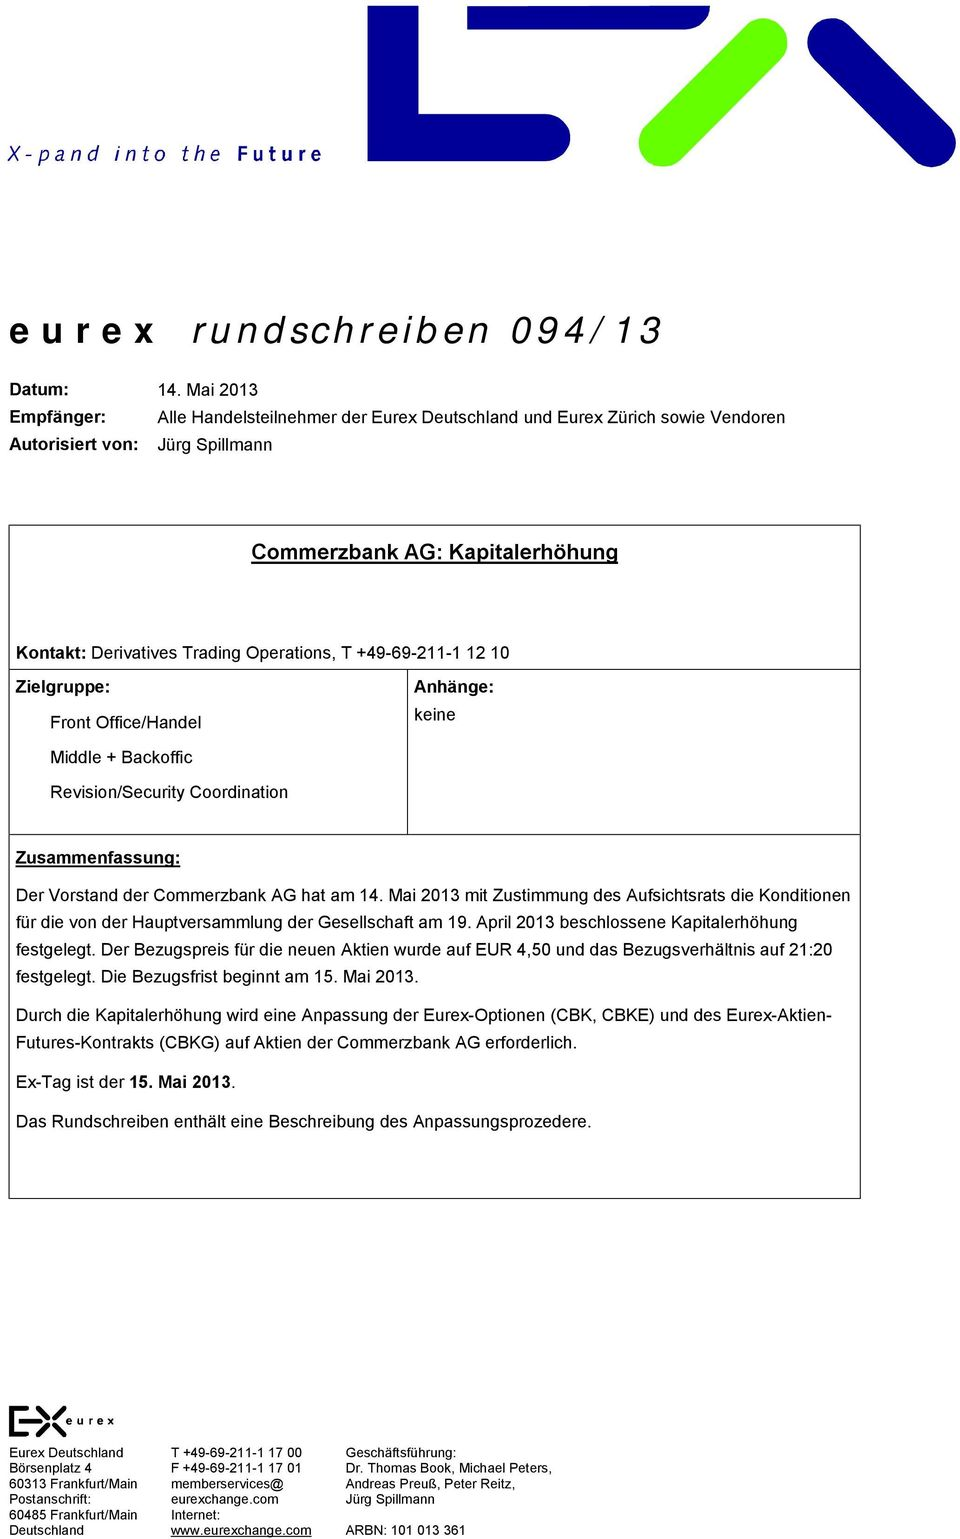 Operations, T +49-69-211-1 12 10 Zielgruppe: Front Office/Handel Anhänge: keine Middle + Backoffic Revision/Security Coordination Zusammenfassung: Der Vorstand der Commerzbank AG hat am 14.